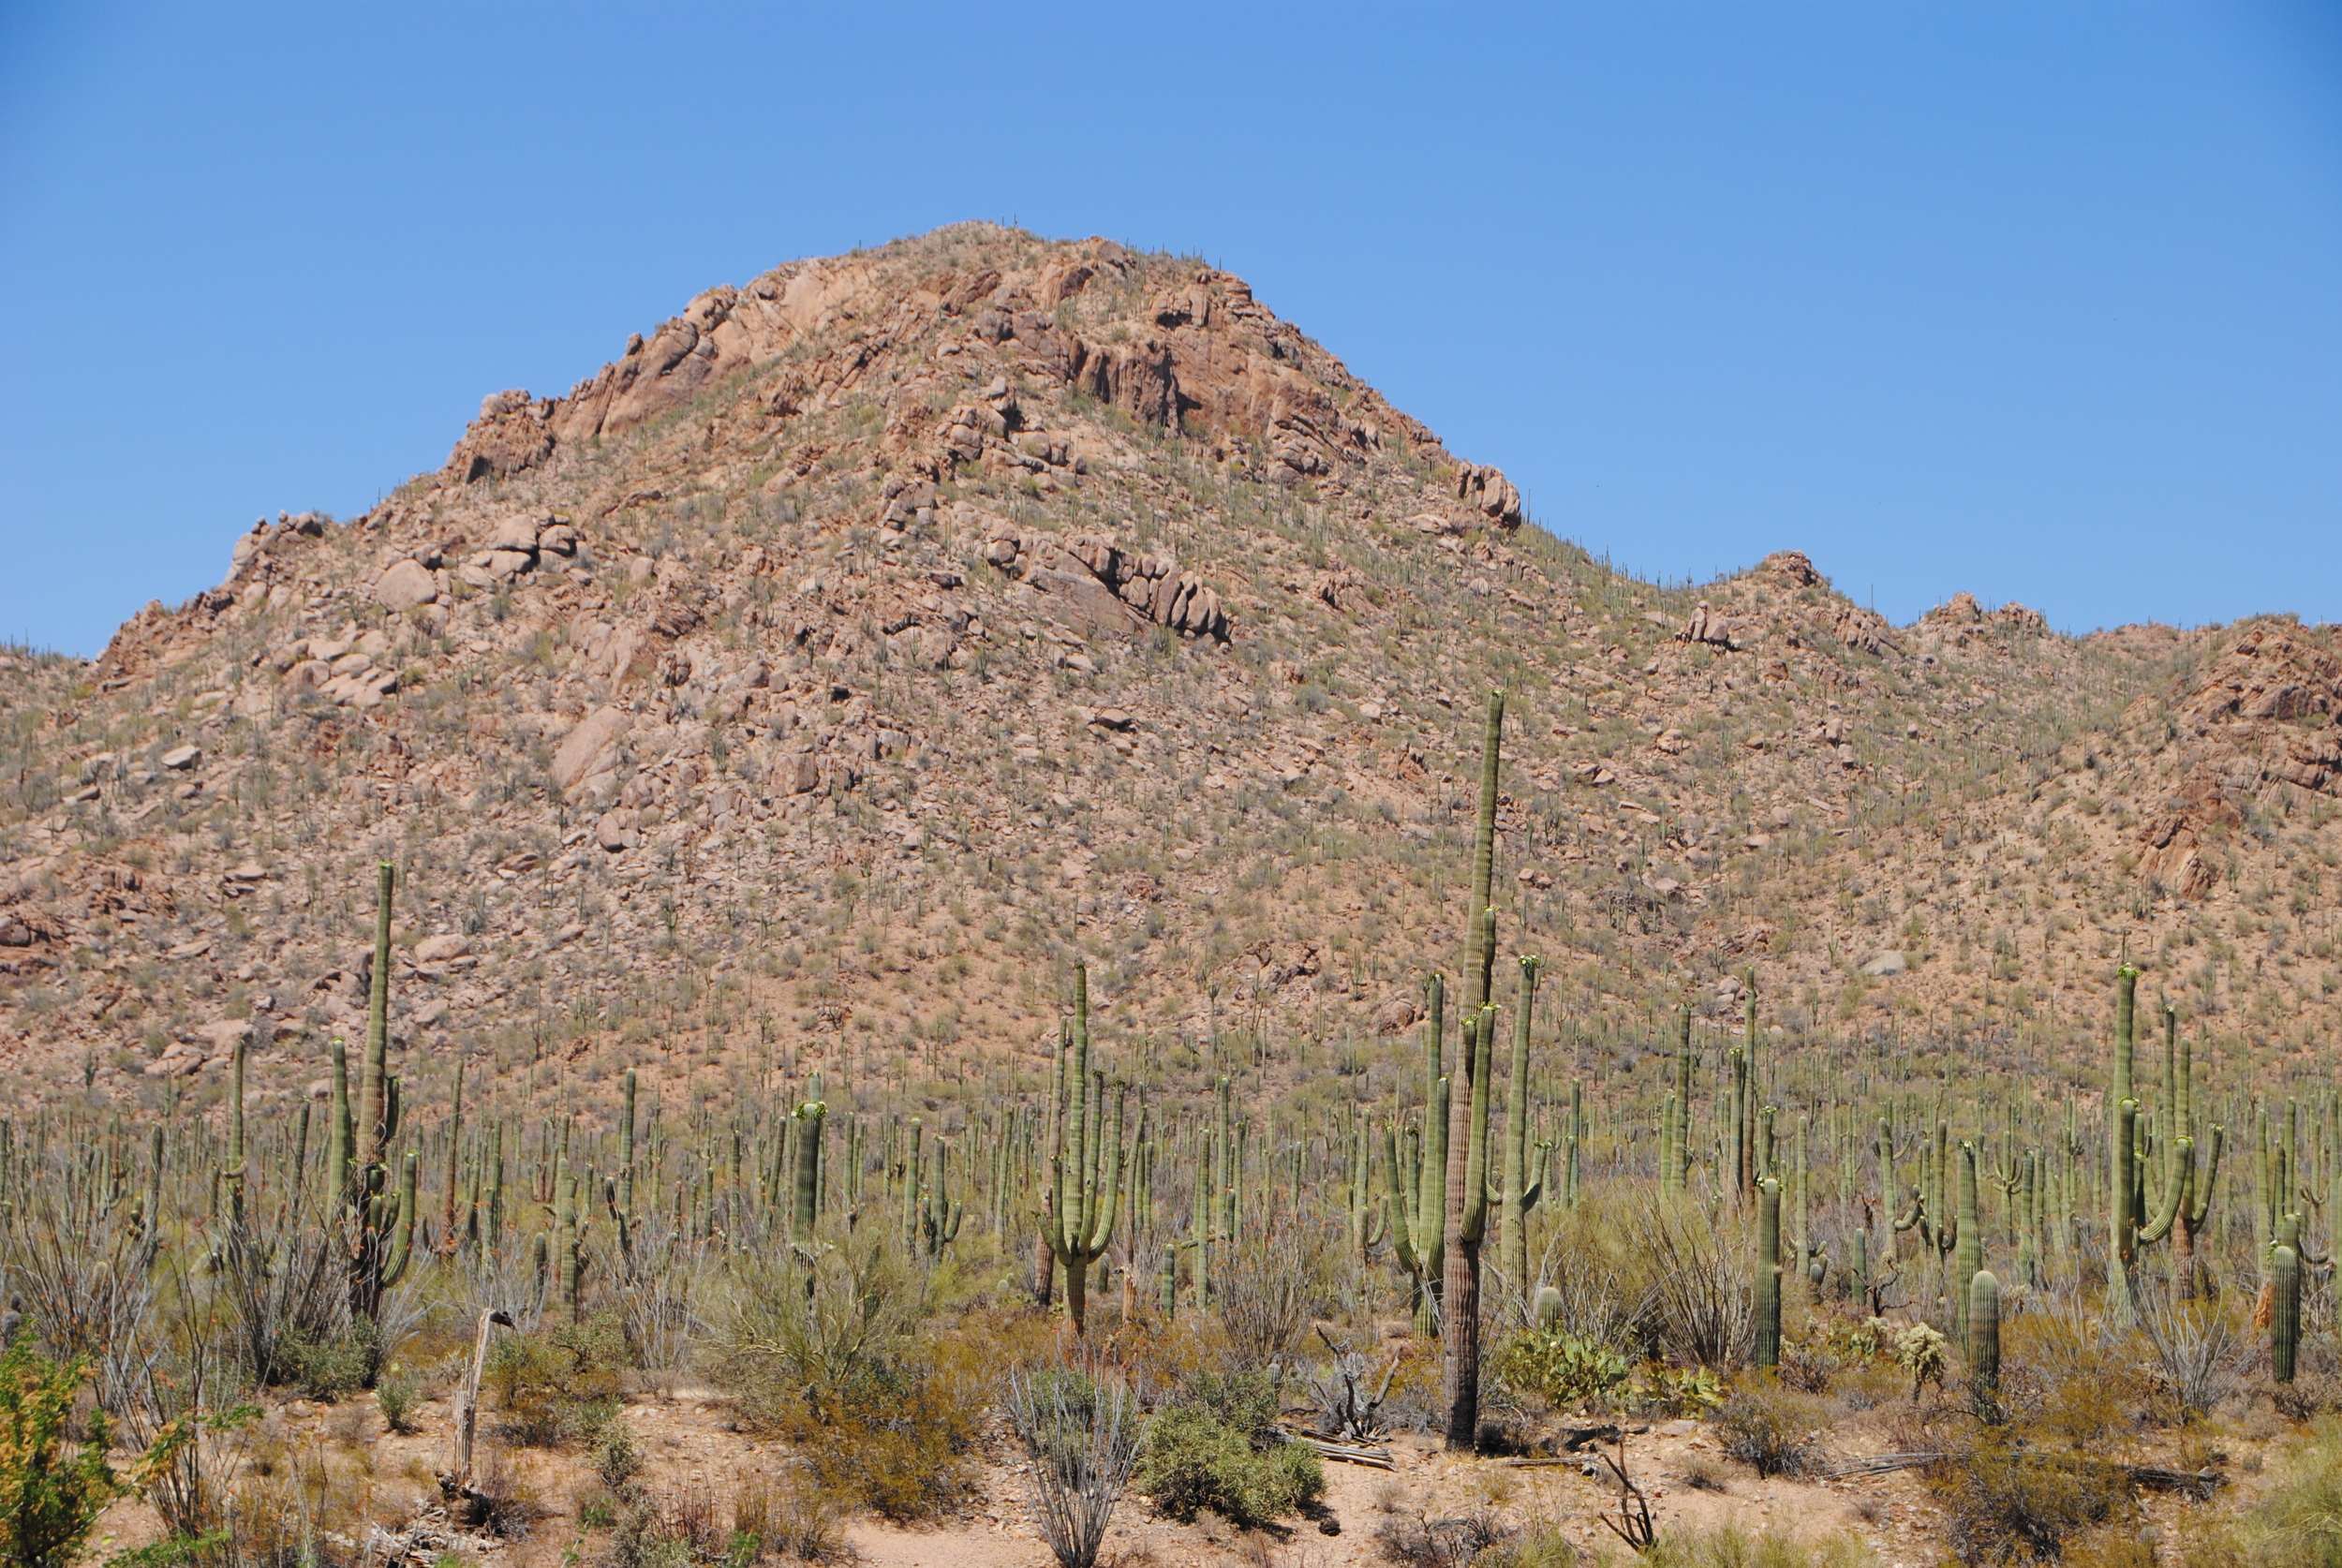 The Saguaro National Park sits on a breathtaking piece of land with expanses of its namesake and rocky buttes framing the views.